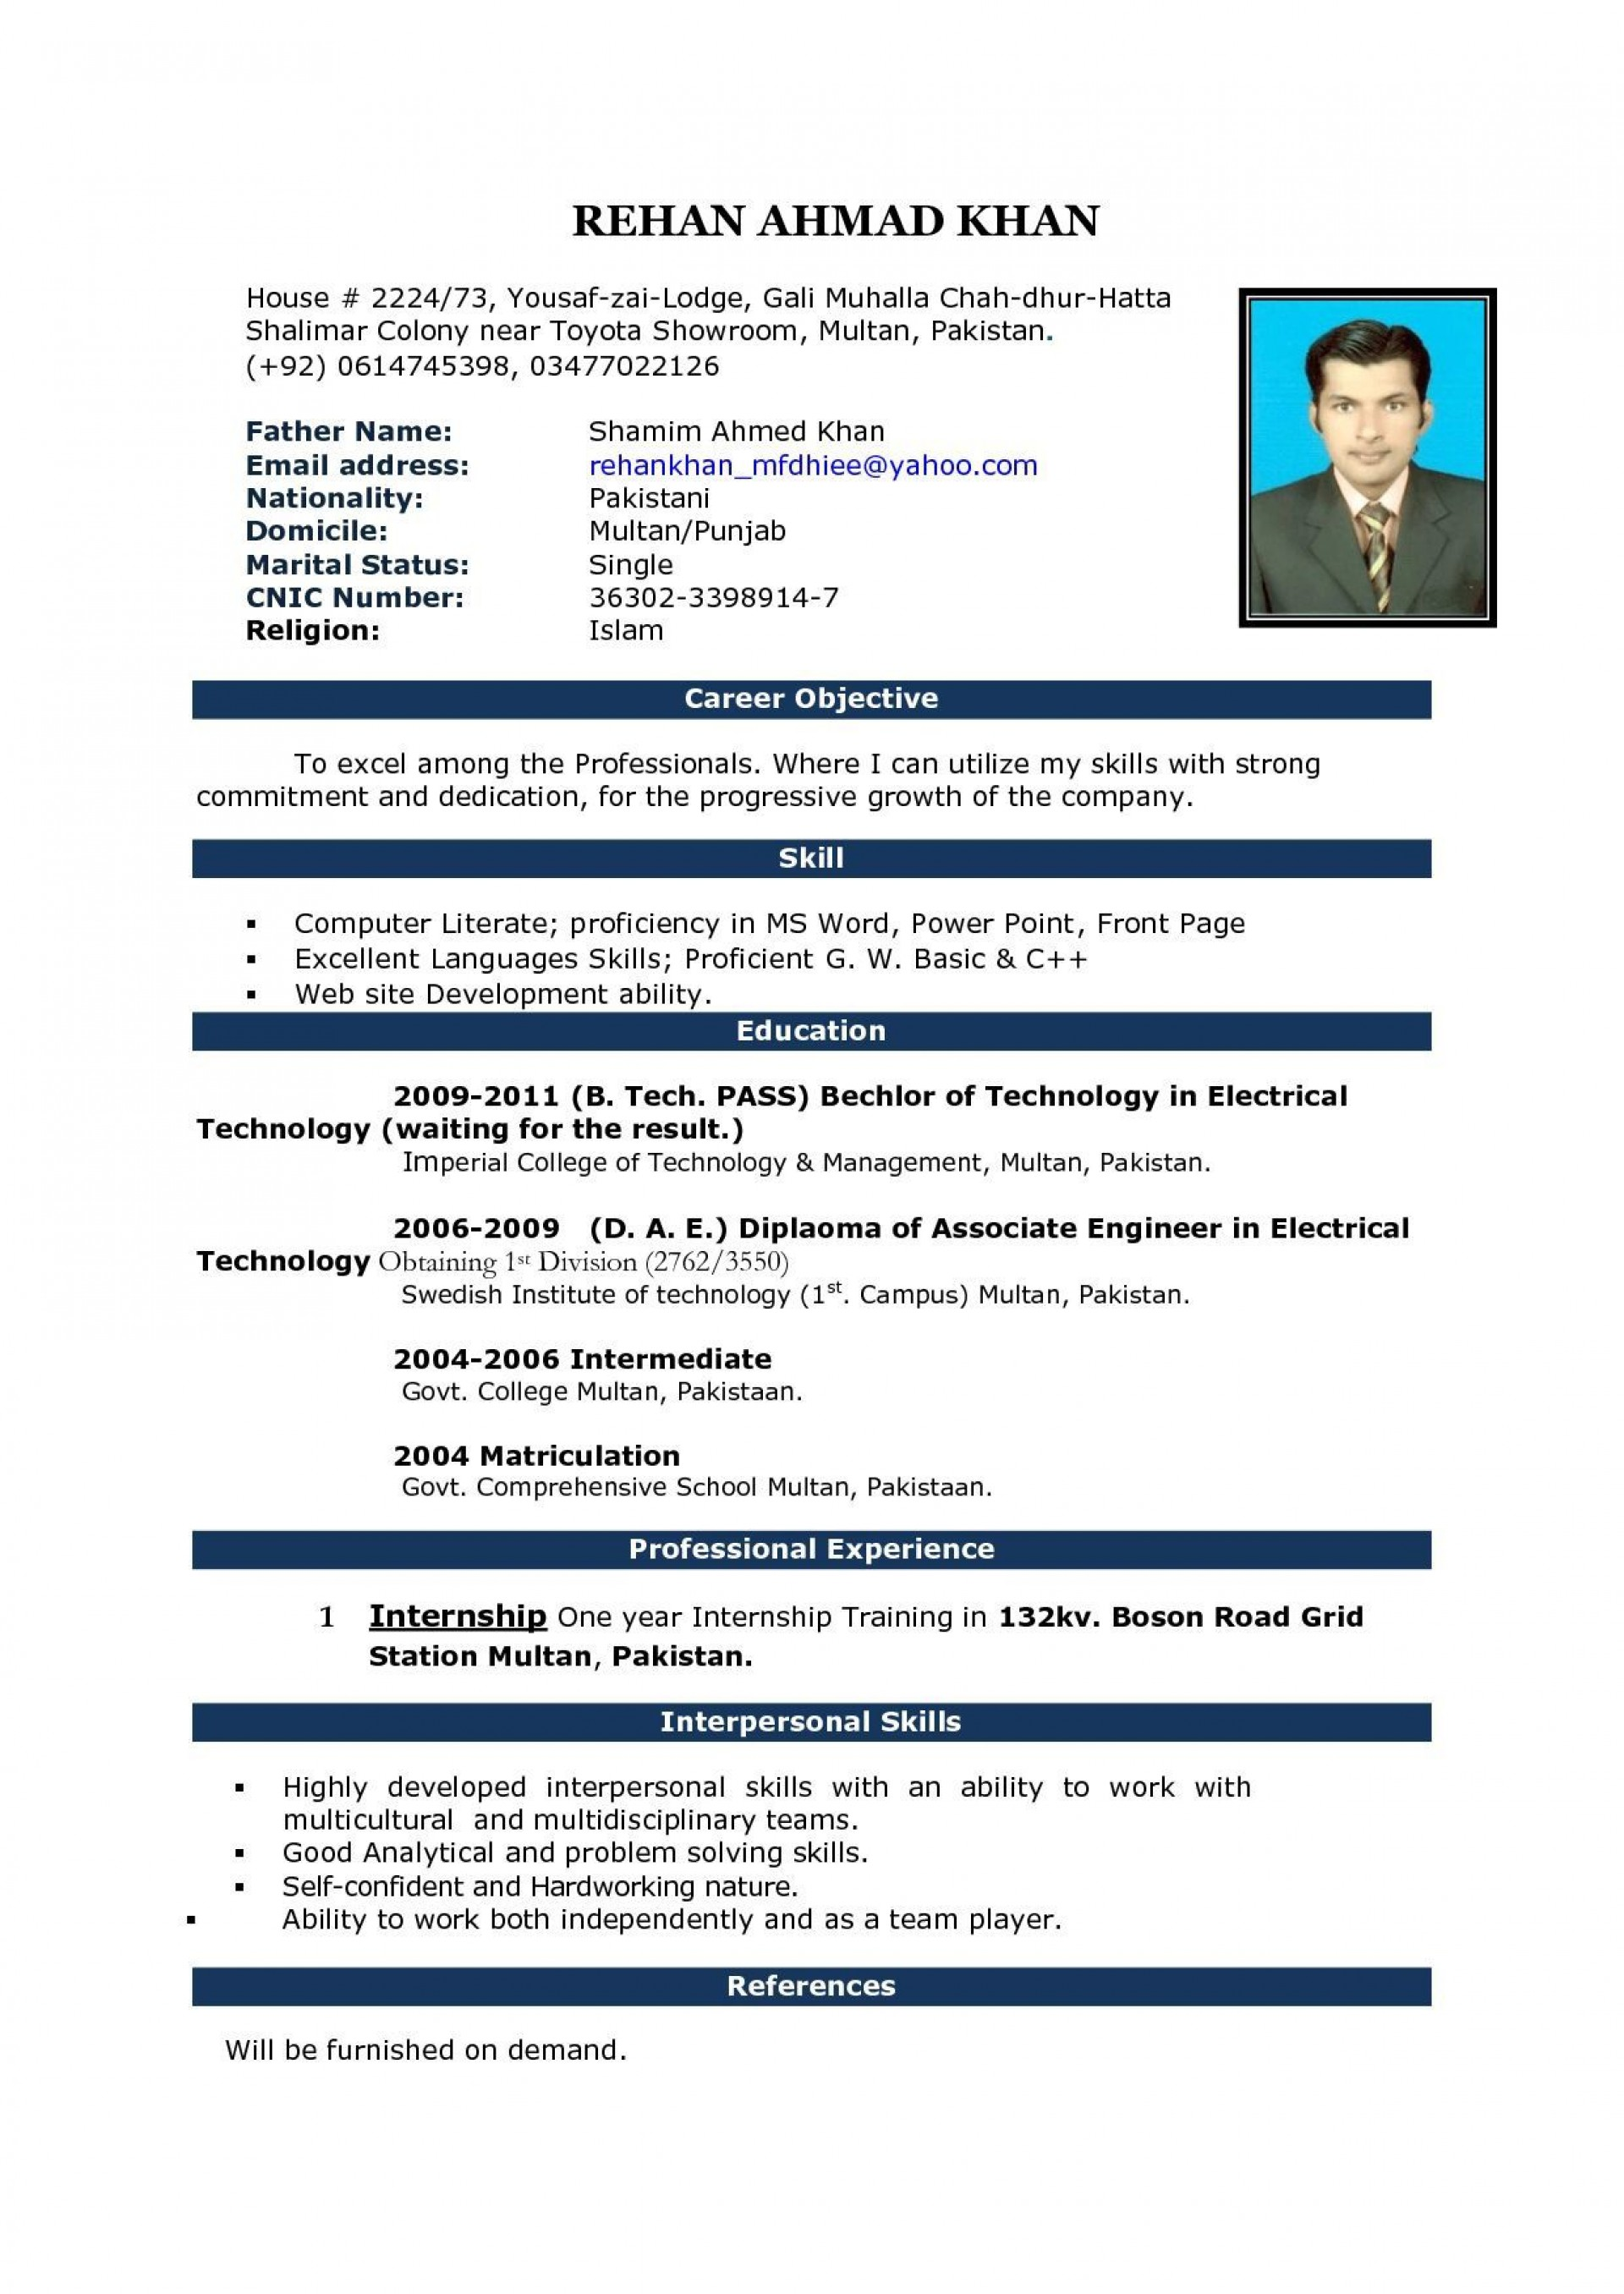 003 Singular Simple Resume Template Download In M Word Inspiration 1920